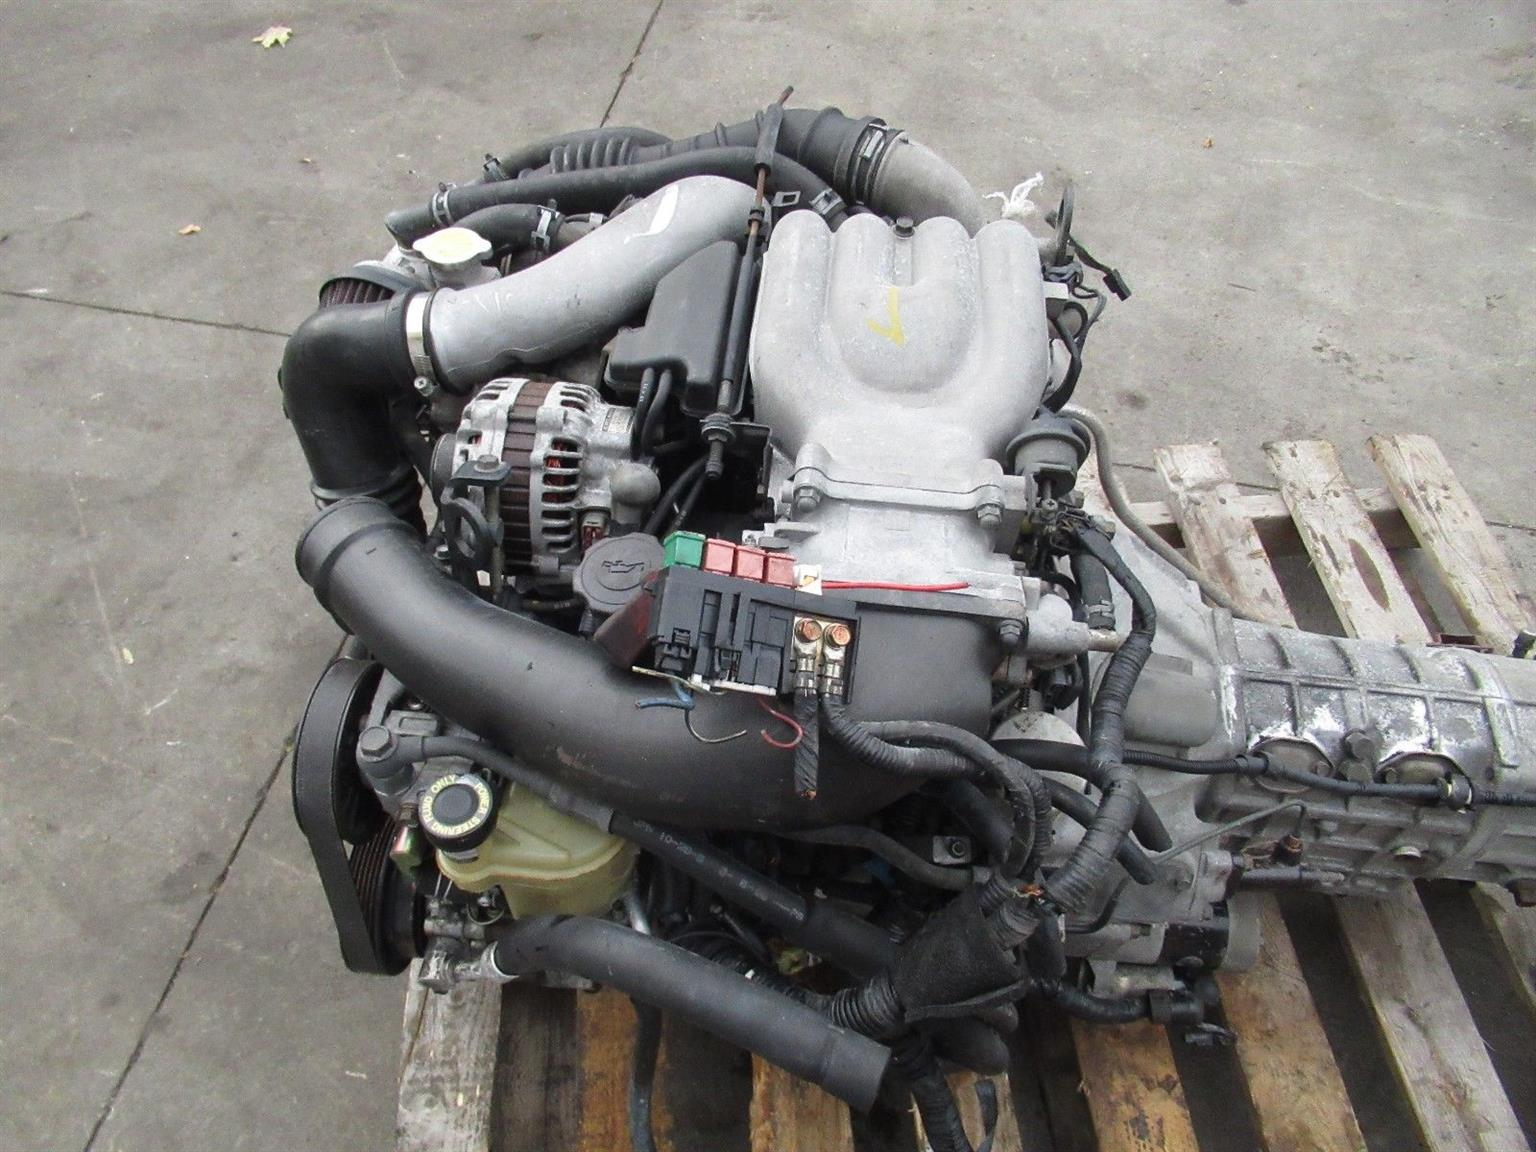 mazda rx7 fd3s 13b-tt twin turbo engine 13btt engine 1 3l rotary motor 13bt